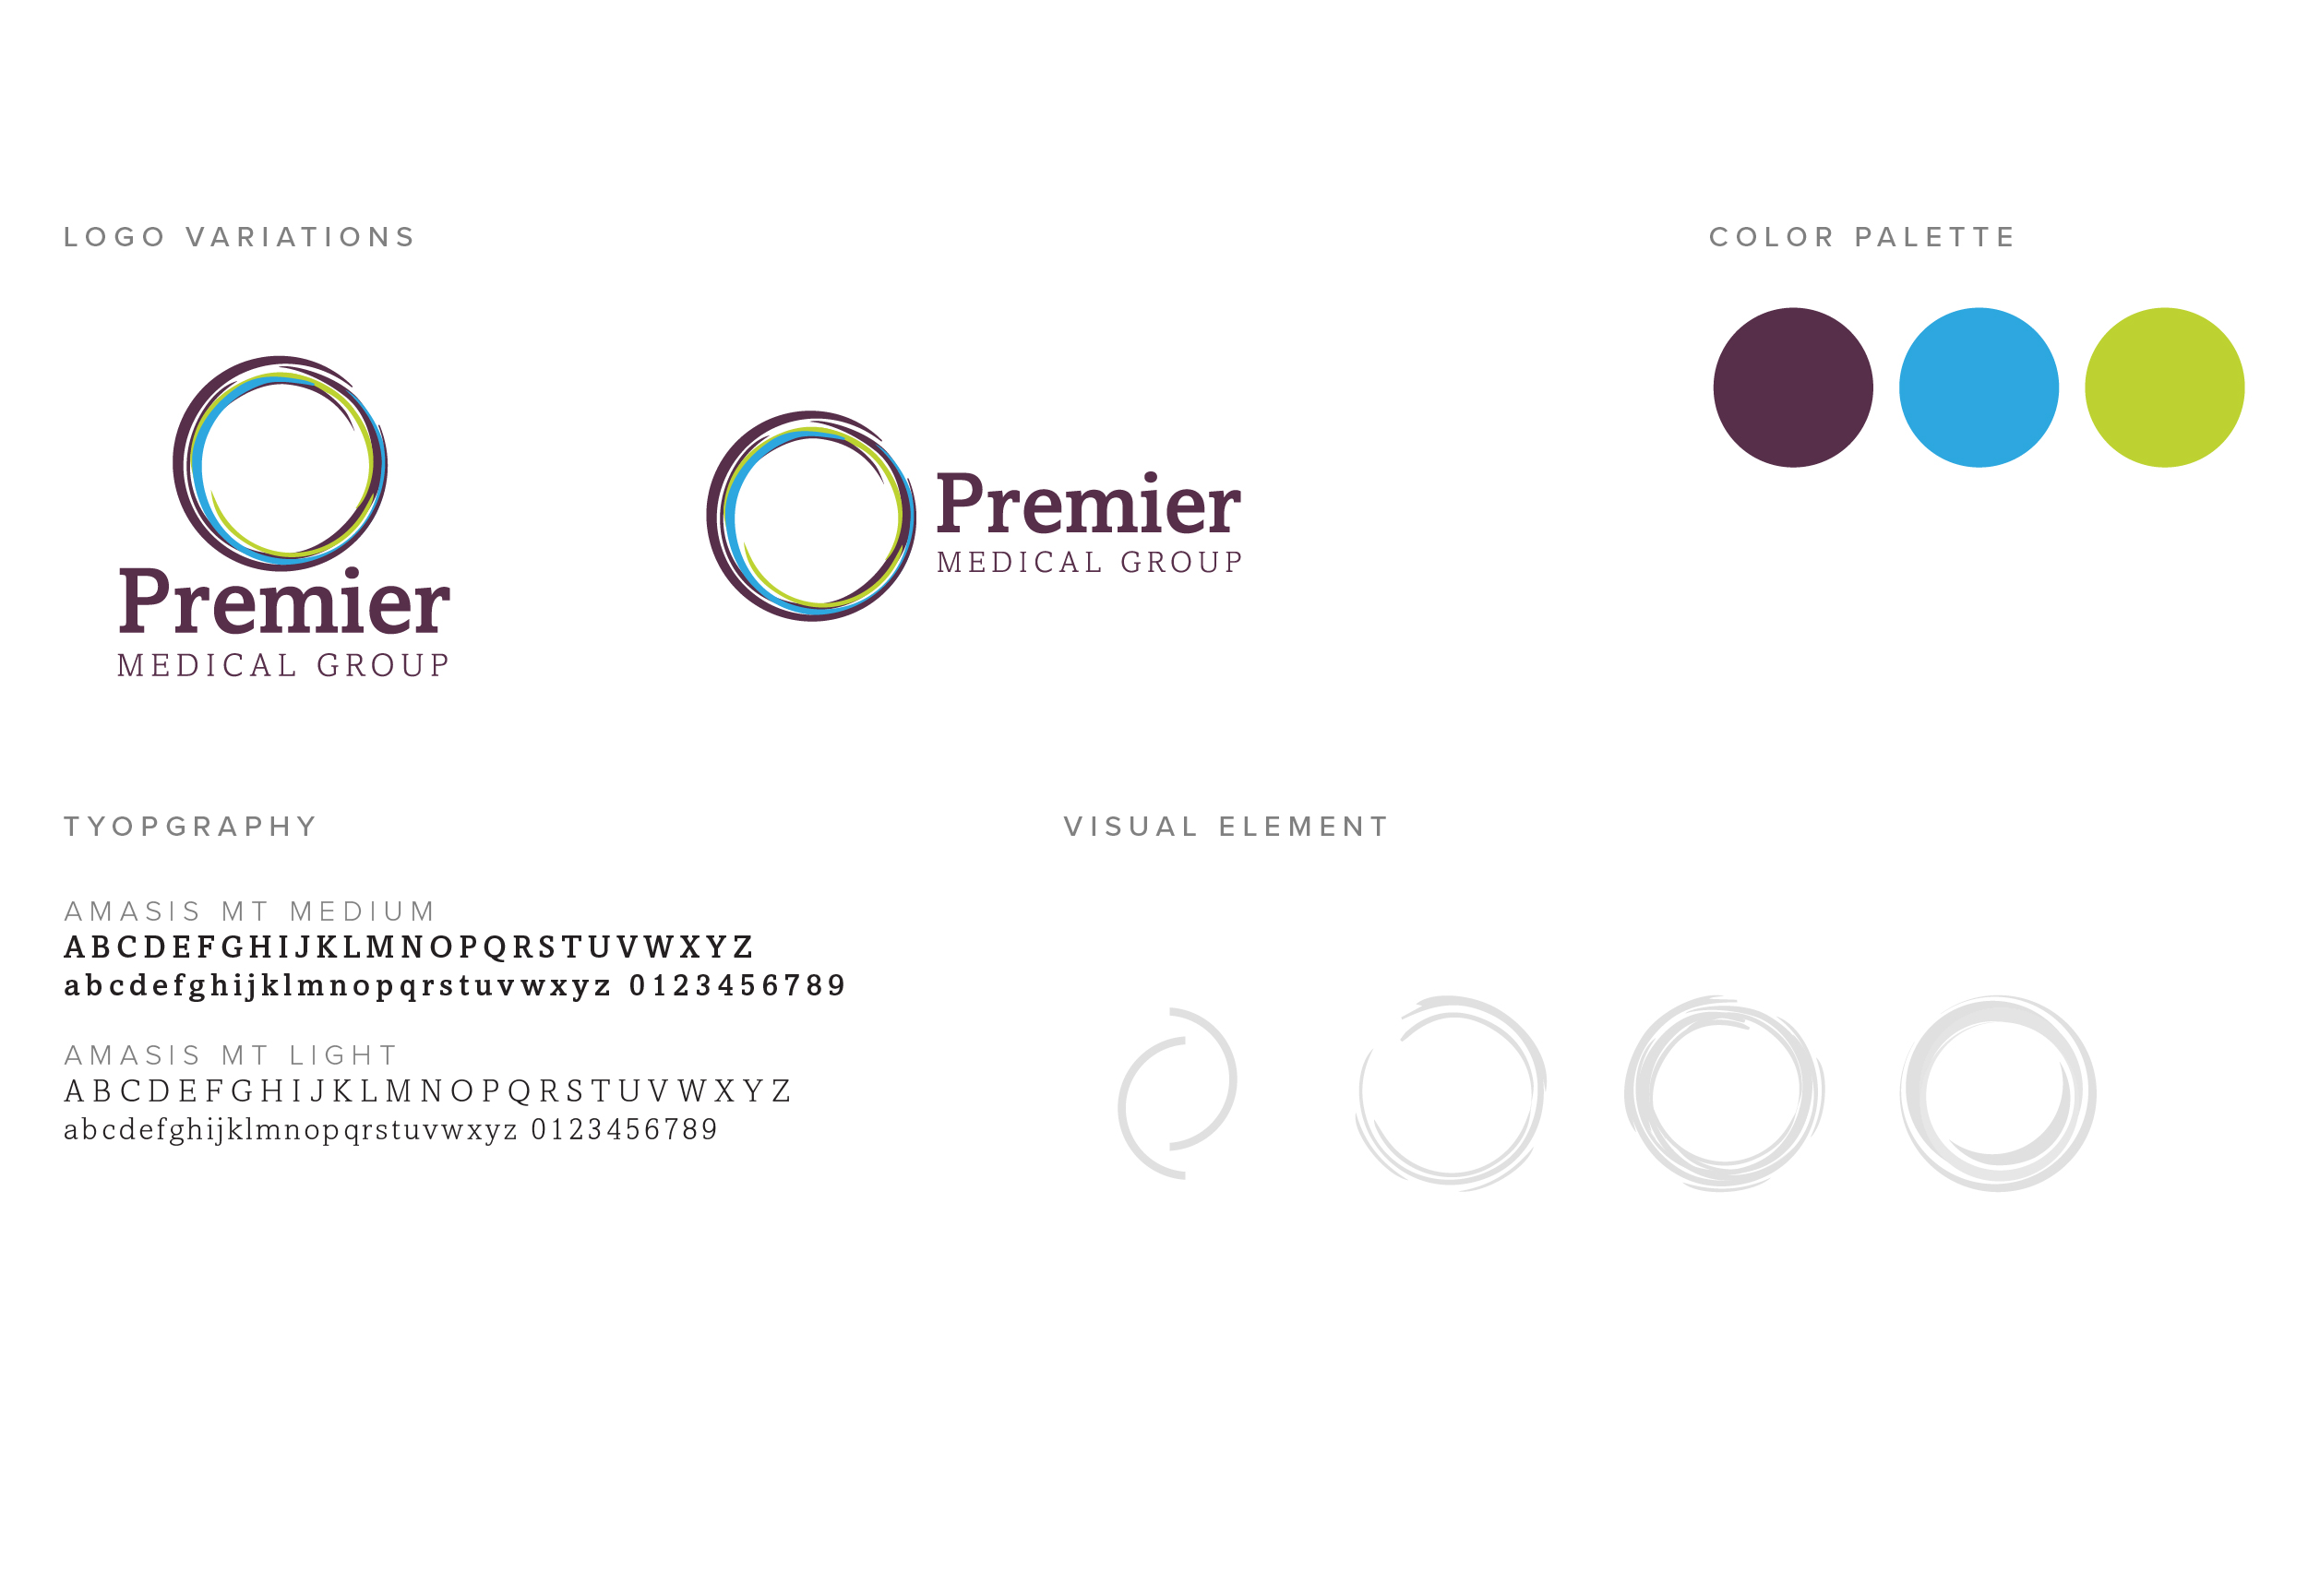 Premier Medical Group Brand Overview